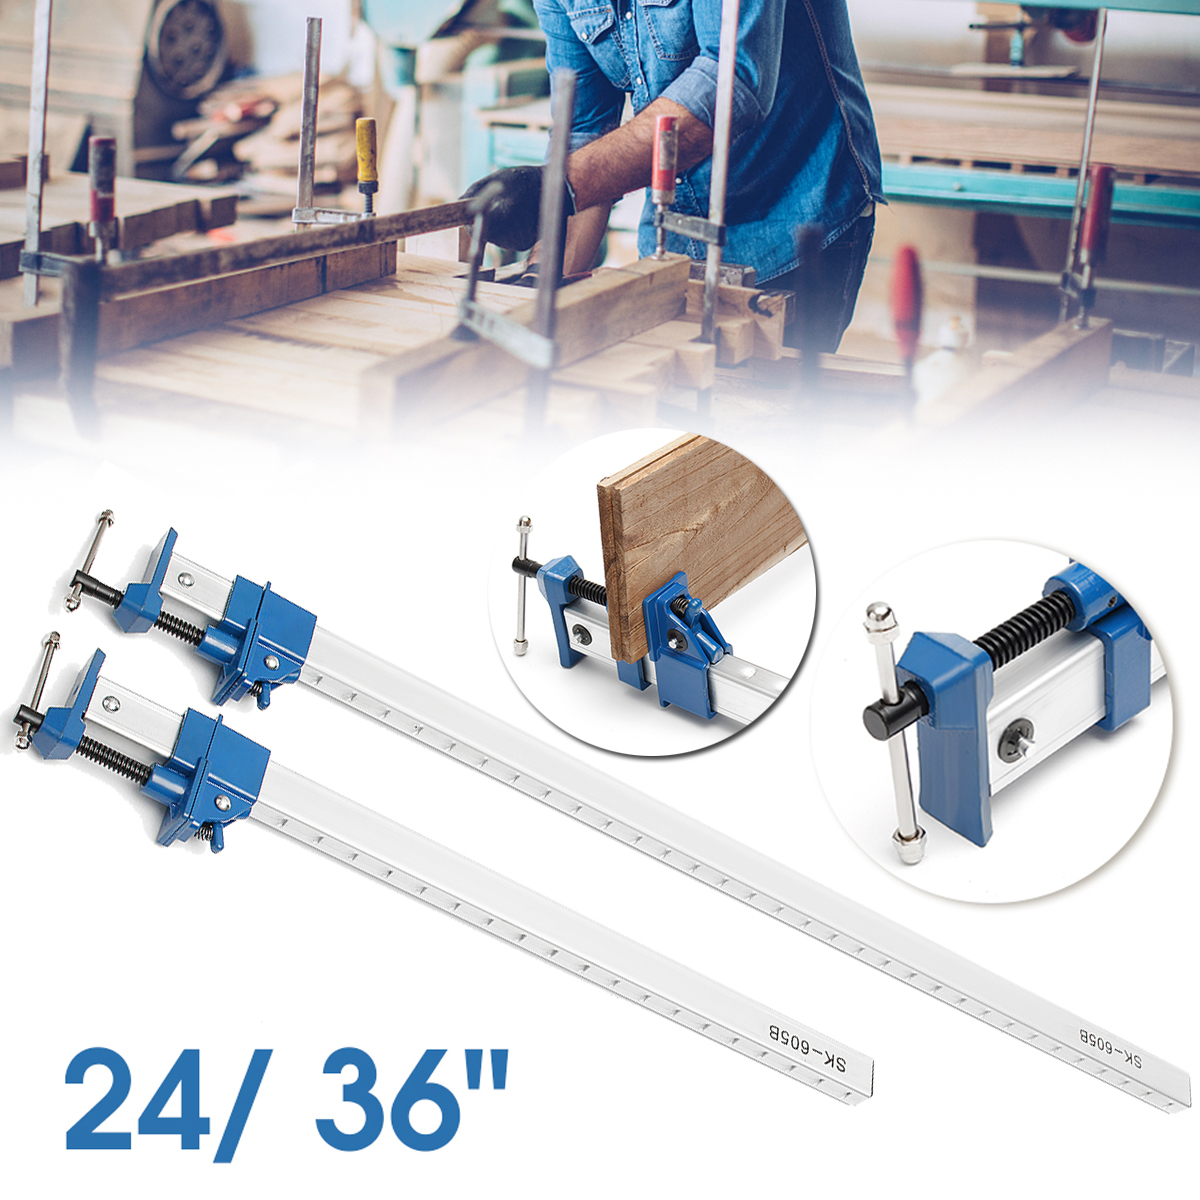 details about 24/36 1/2/4pcs diy heavy duty f clamp t bar wood clamps for  woodworking quick